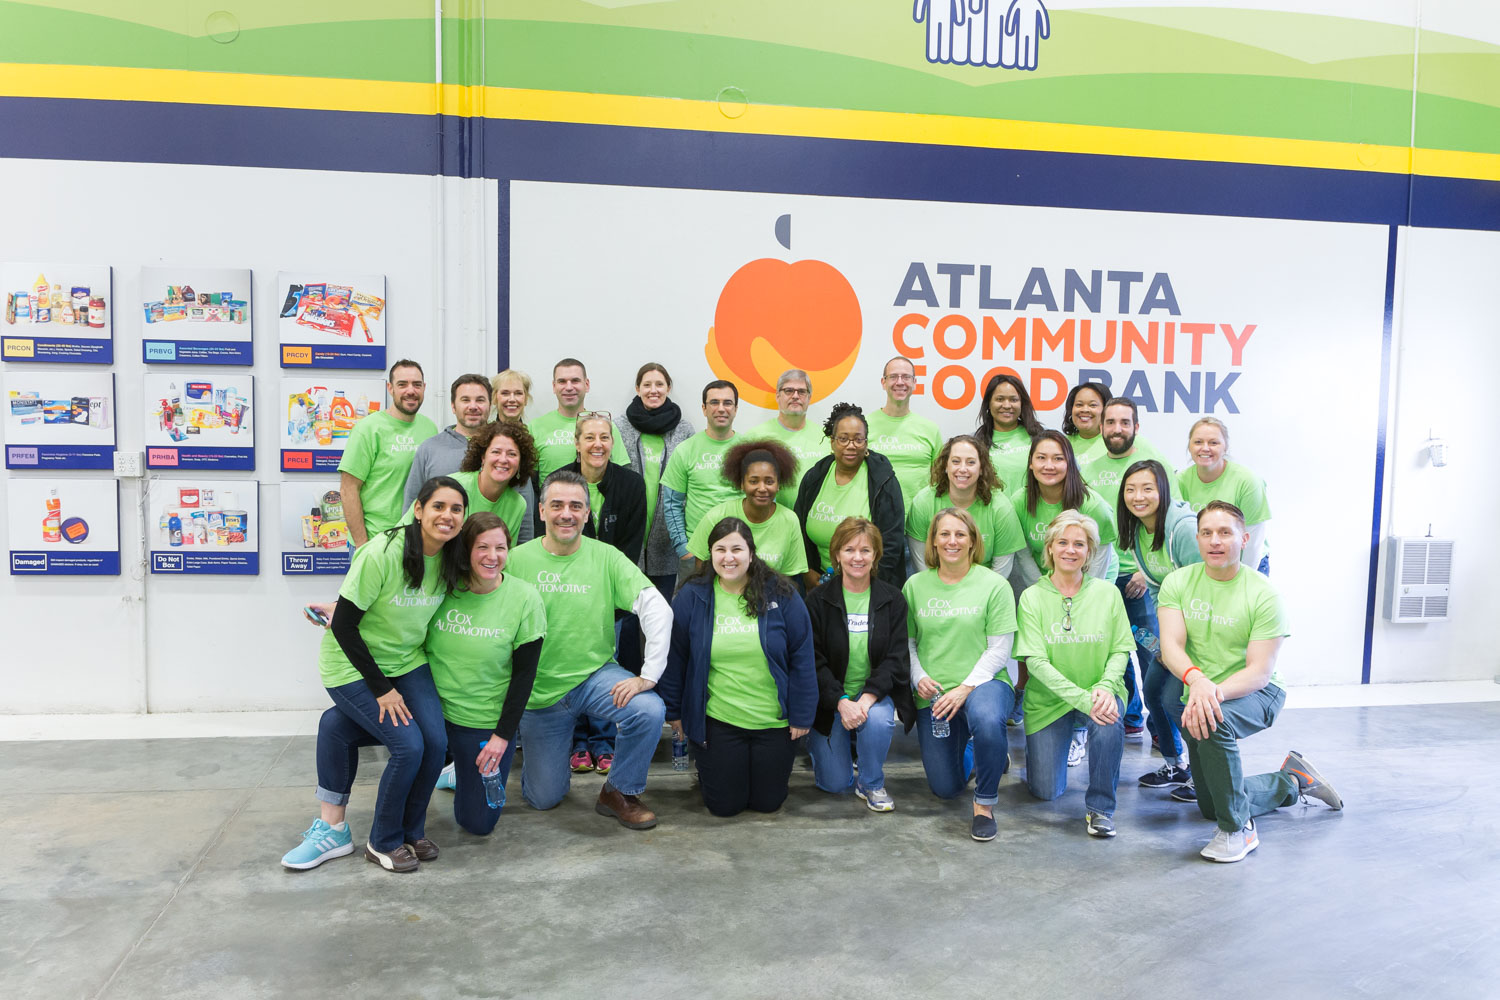 W_3-17-2017 Atlanta Community Food Bank-2.jpg